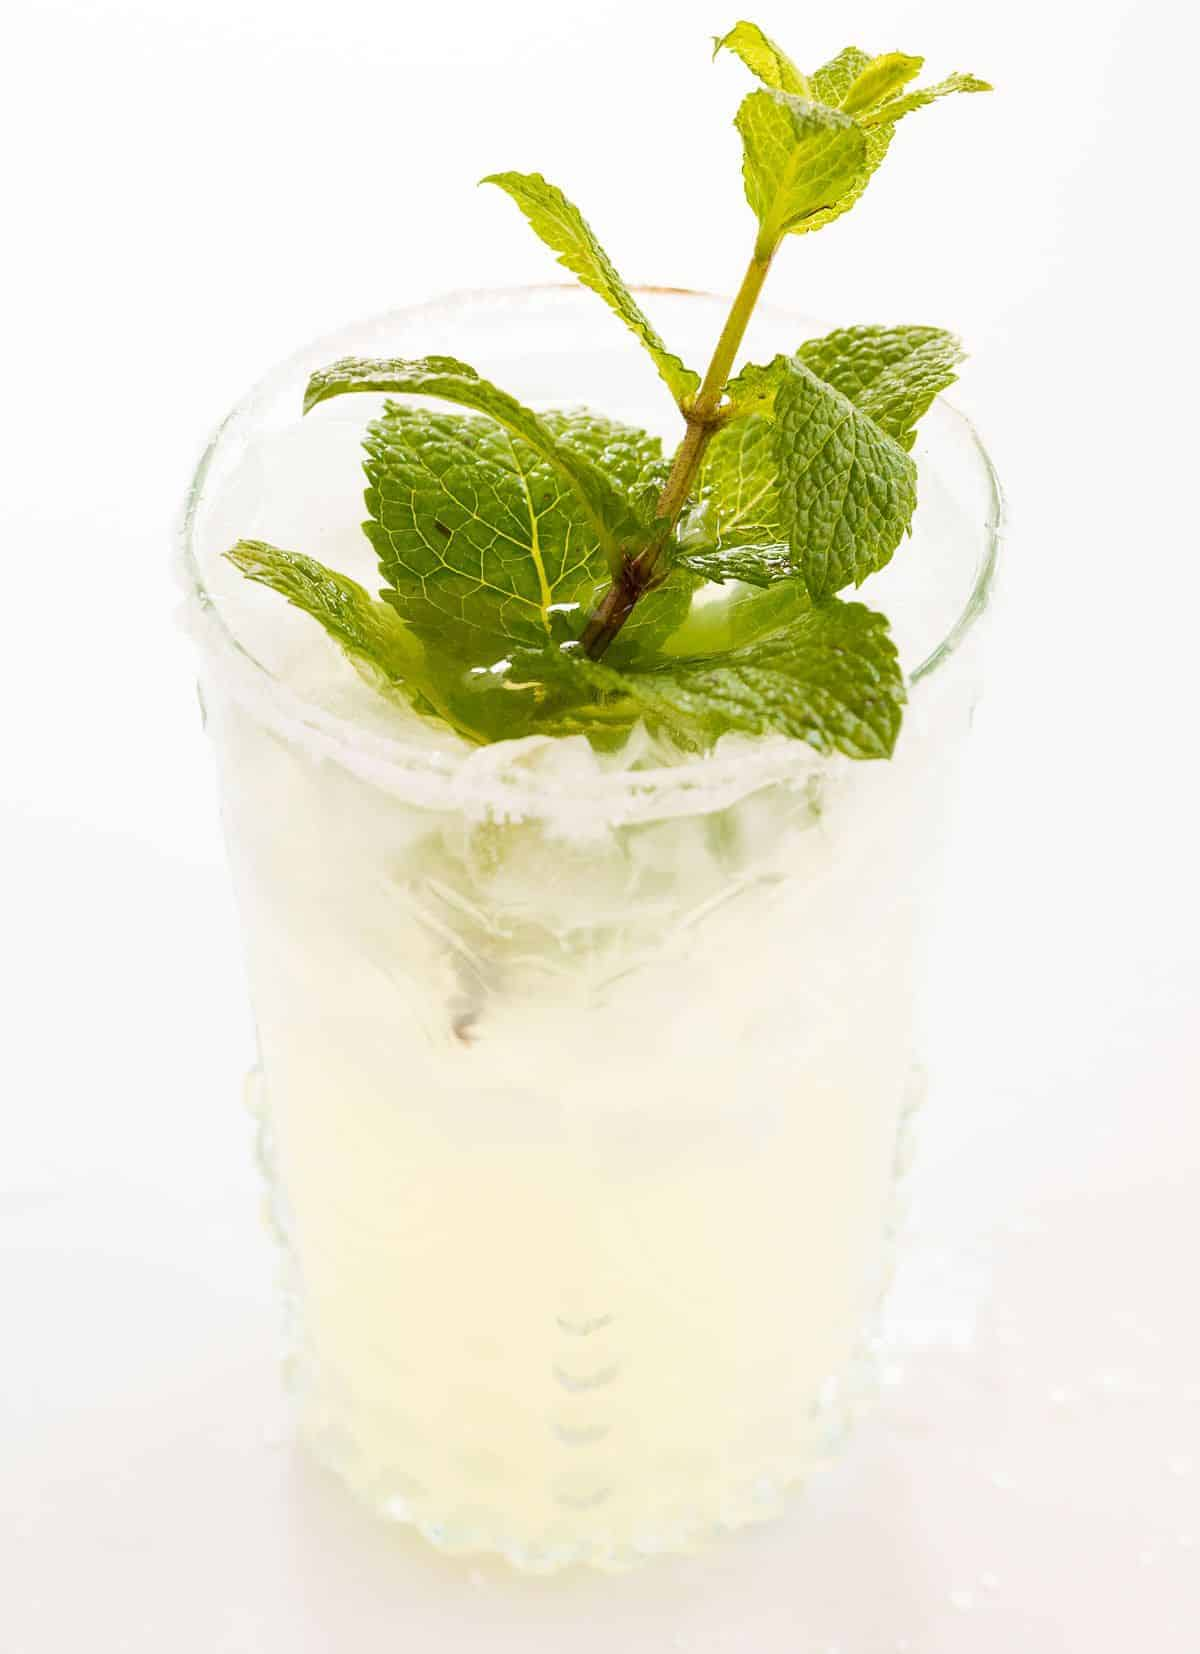 A mint margarita recipe in a clear glass, garnished with fresh mint.